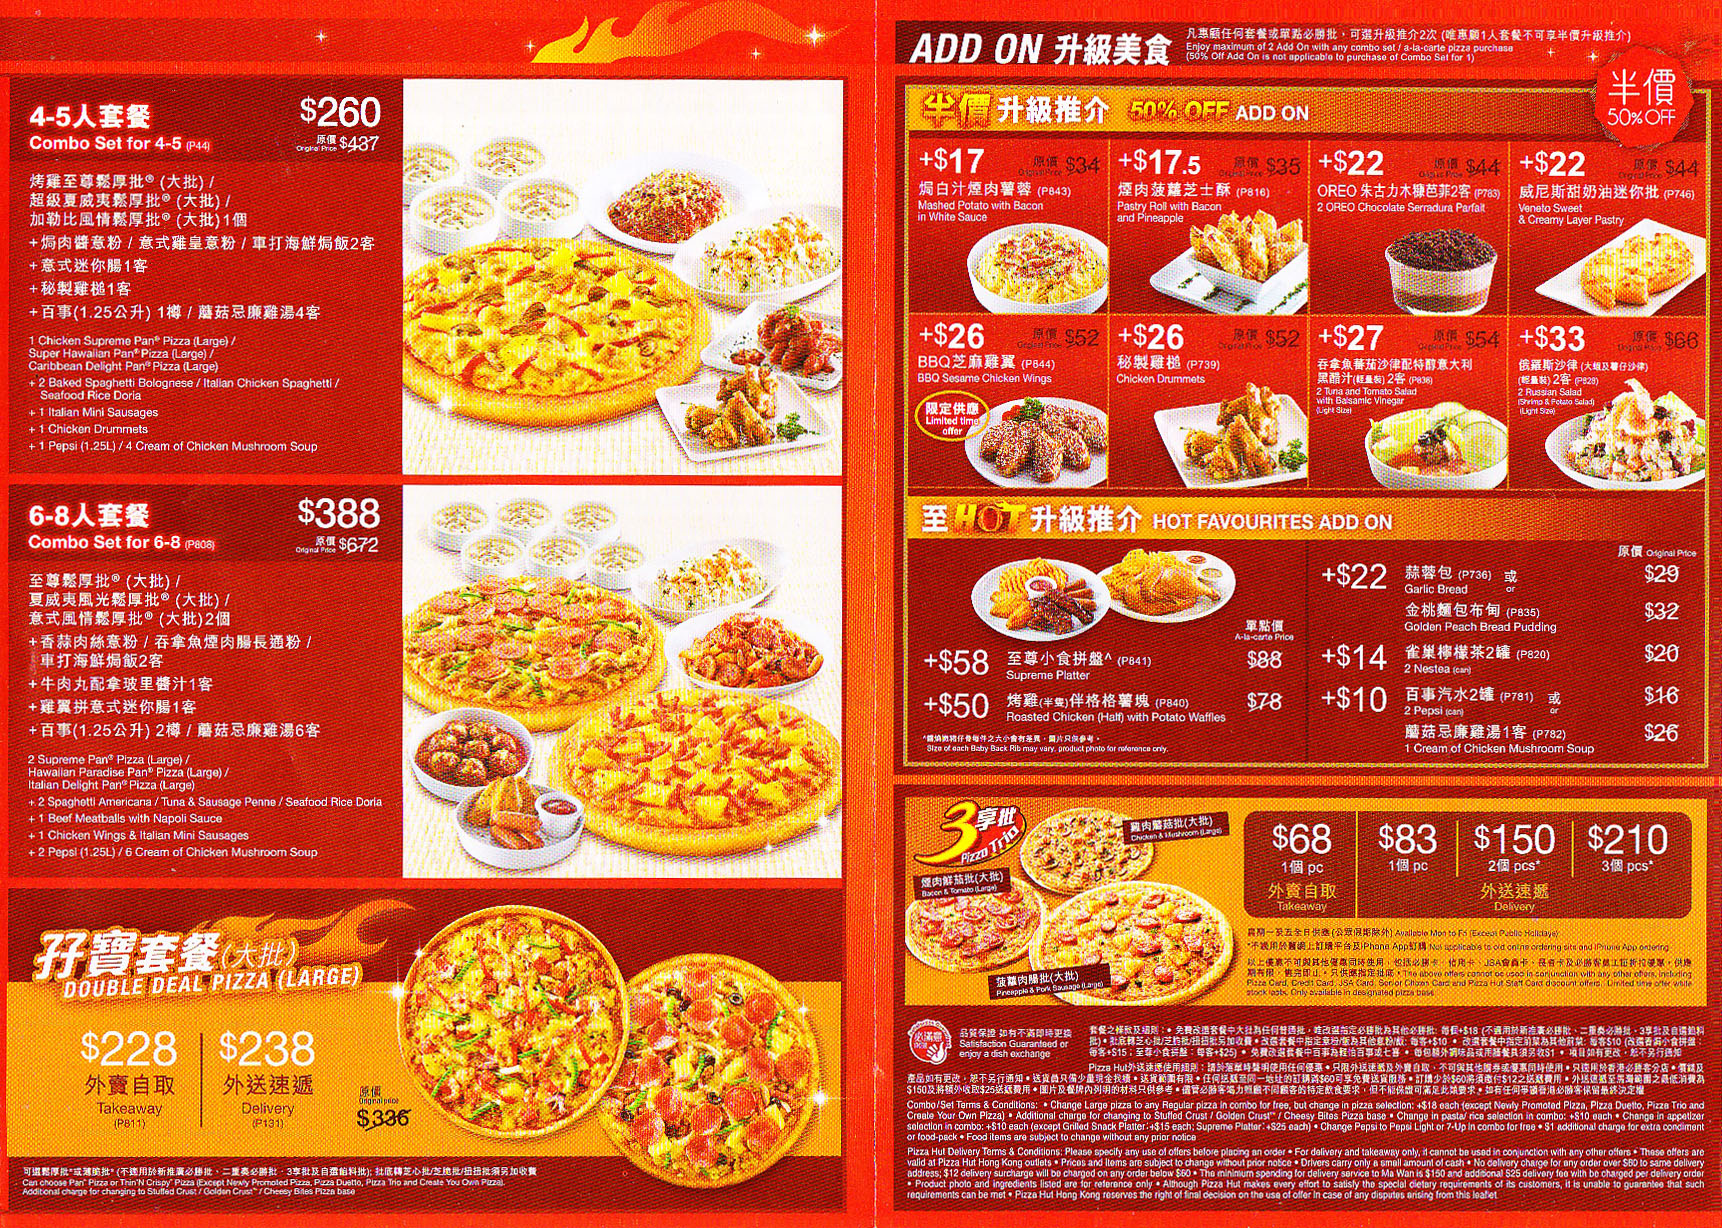 Pizza hut mobile coupons